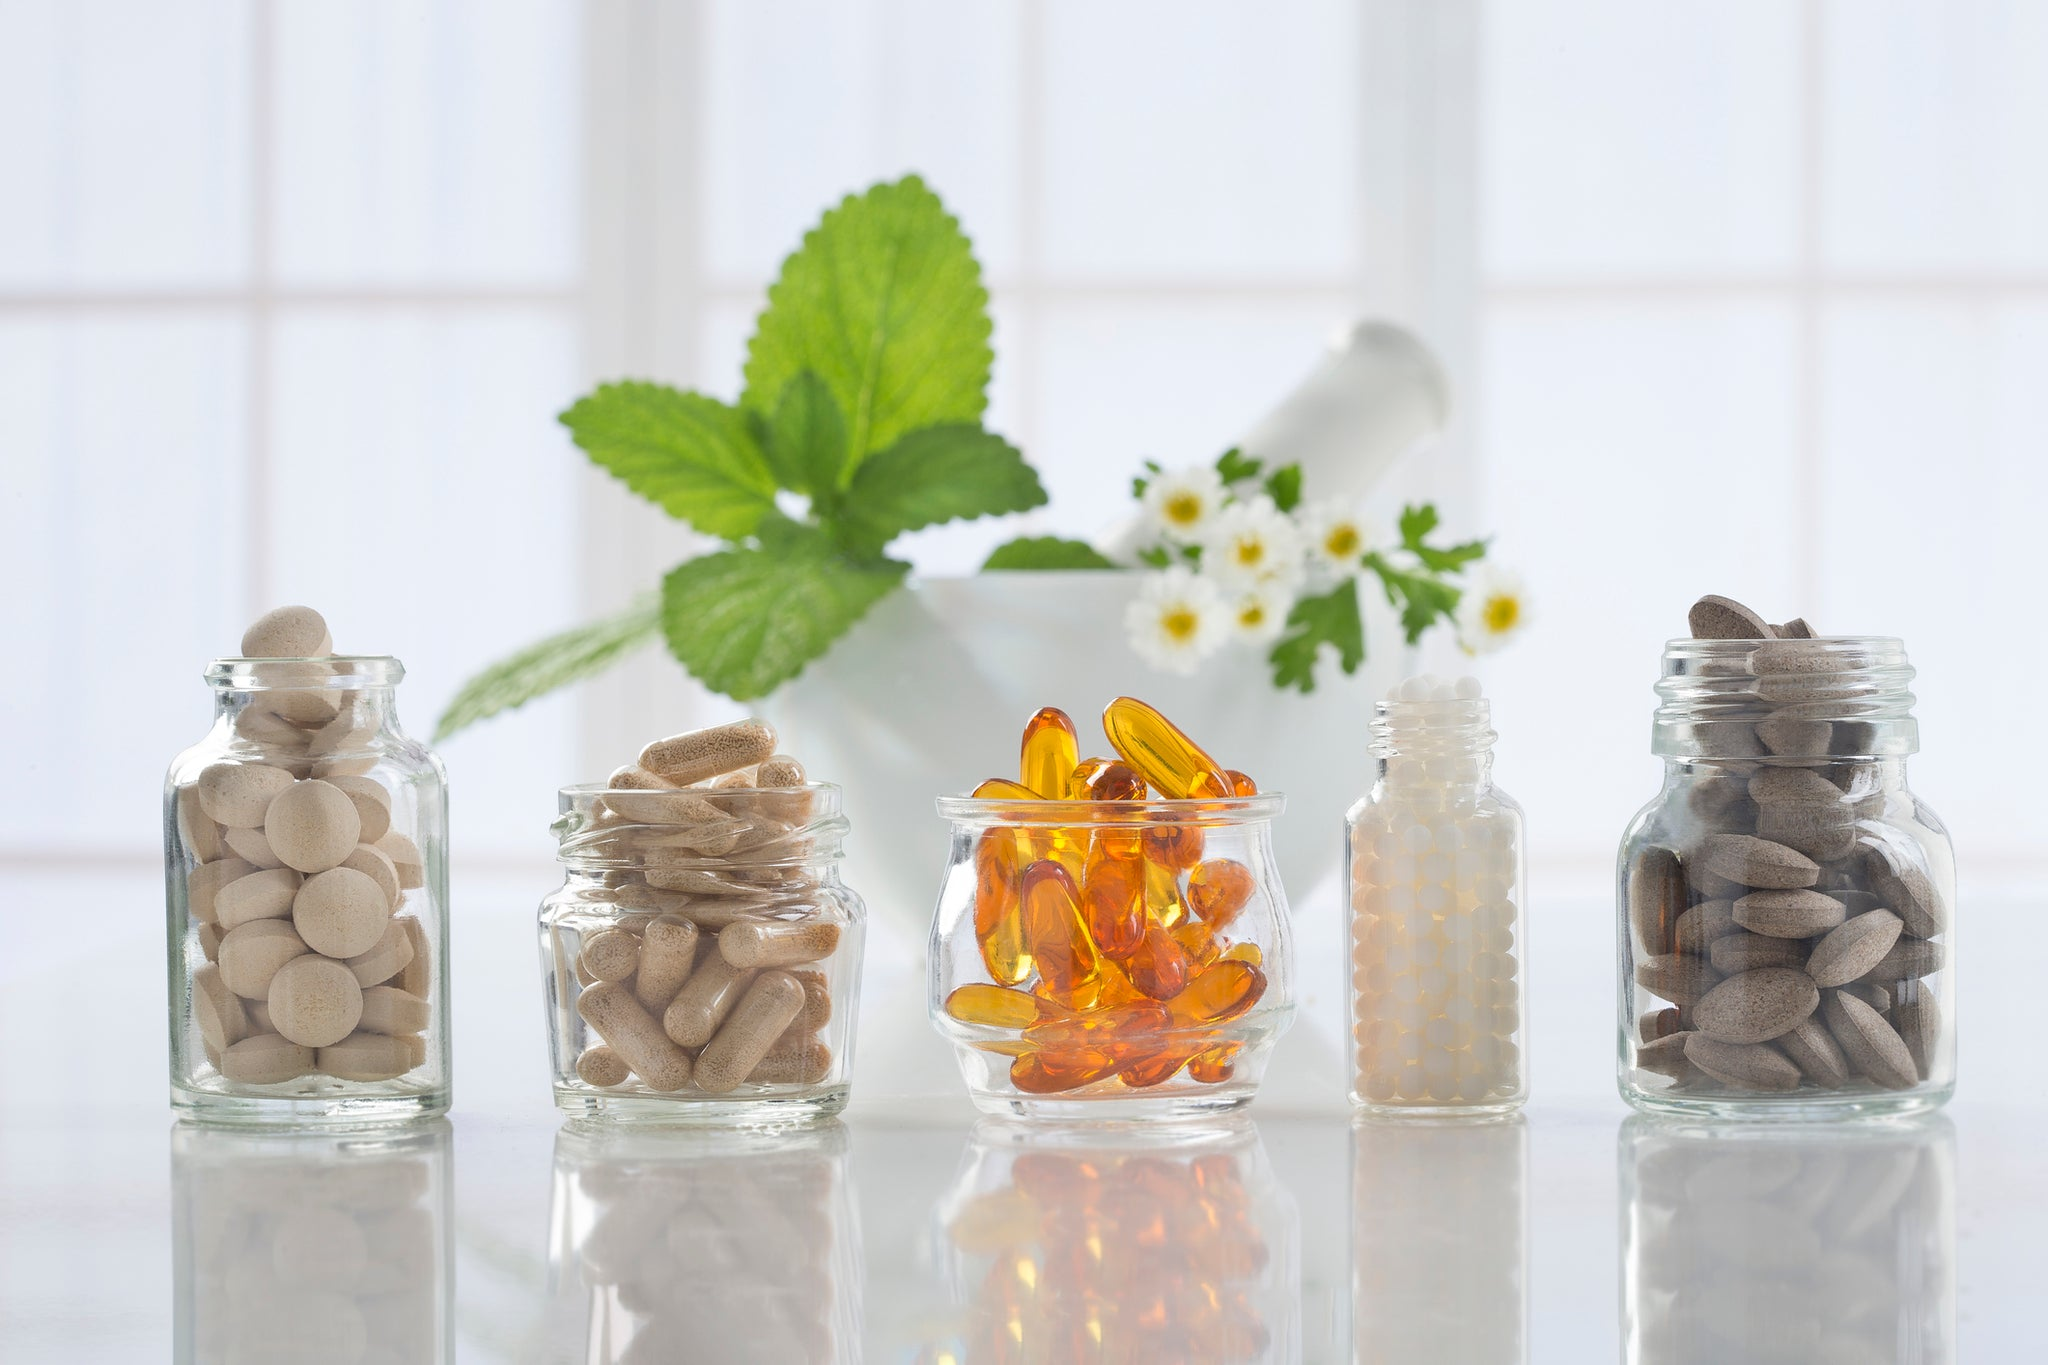 Are All Supplements Created Equal? What You Need to Look for in a Quality Supplement